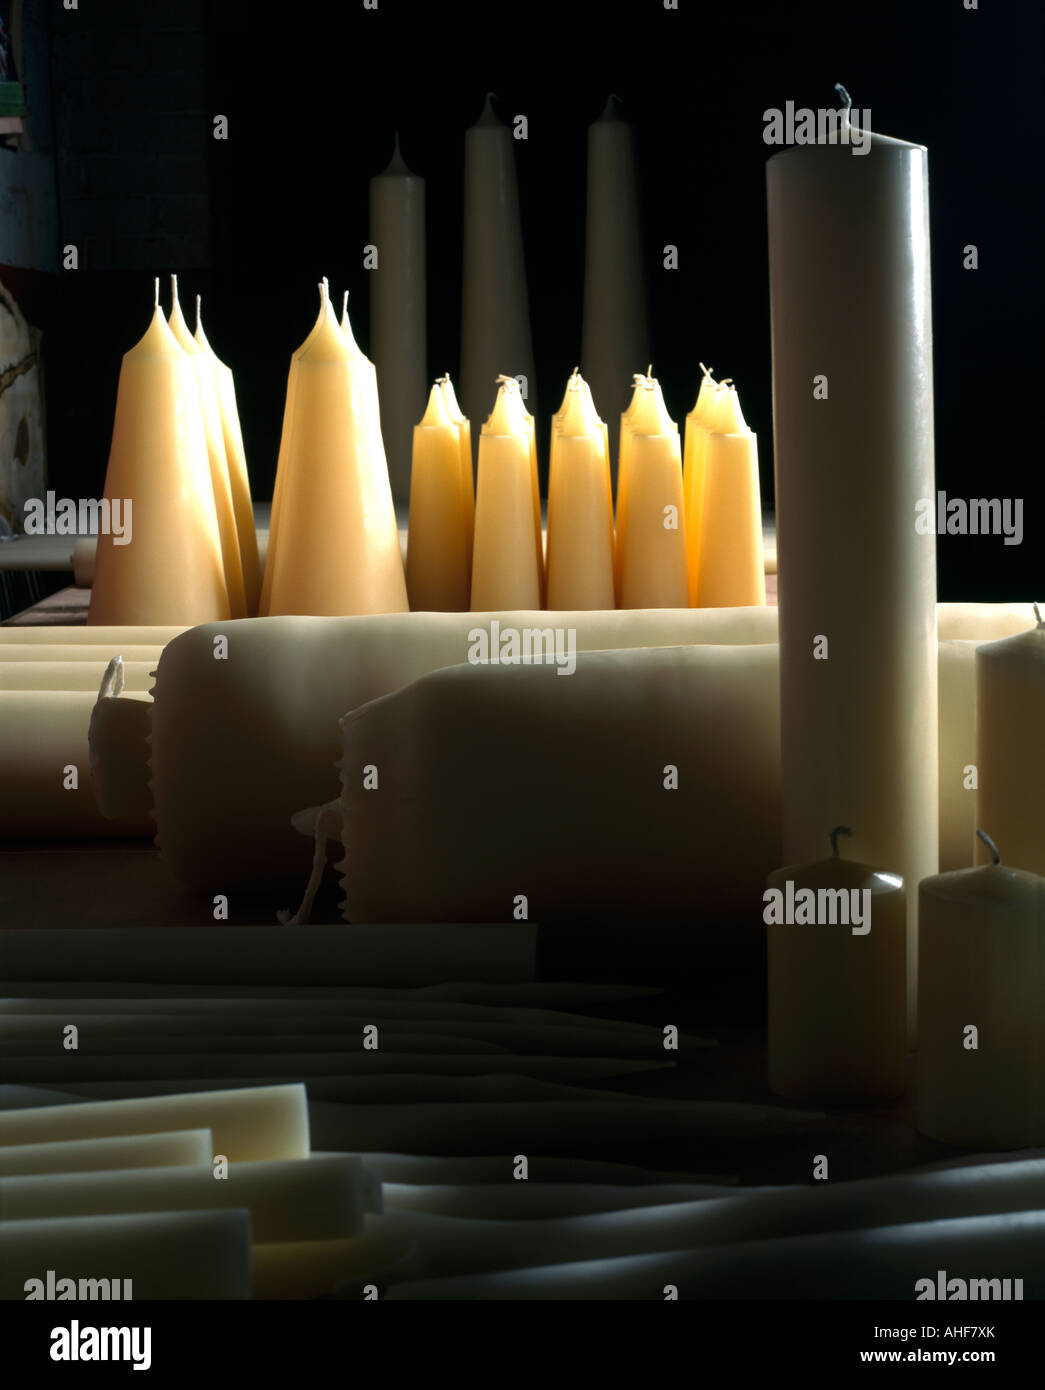 Price's Candles Stock Photos & Price's Candles Stock Images - Alamy